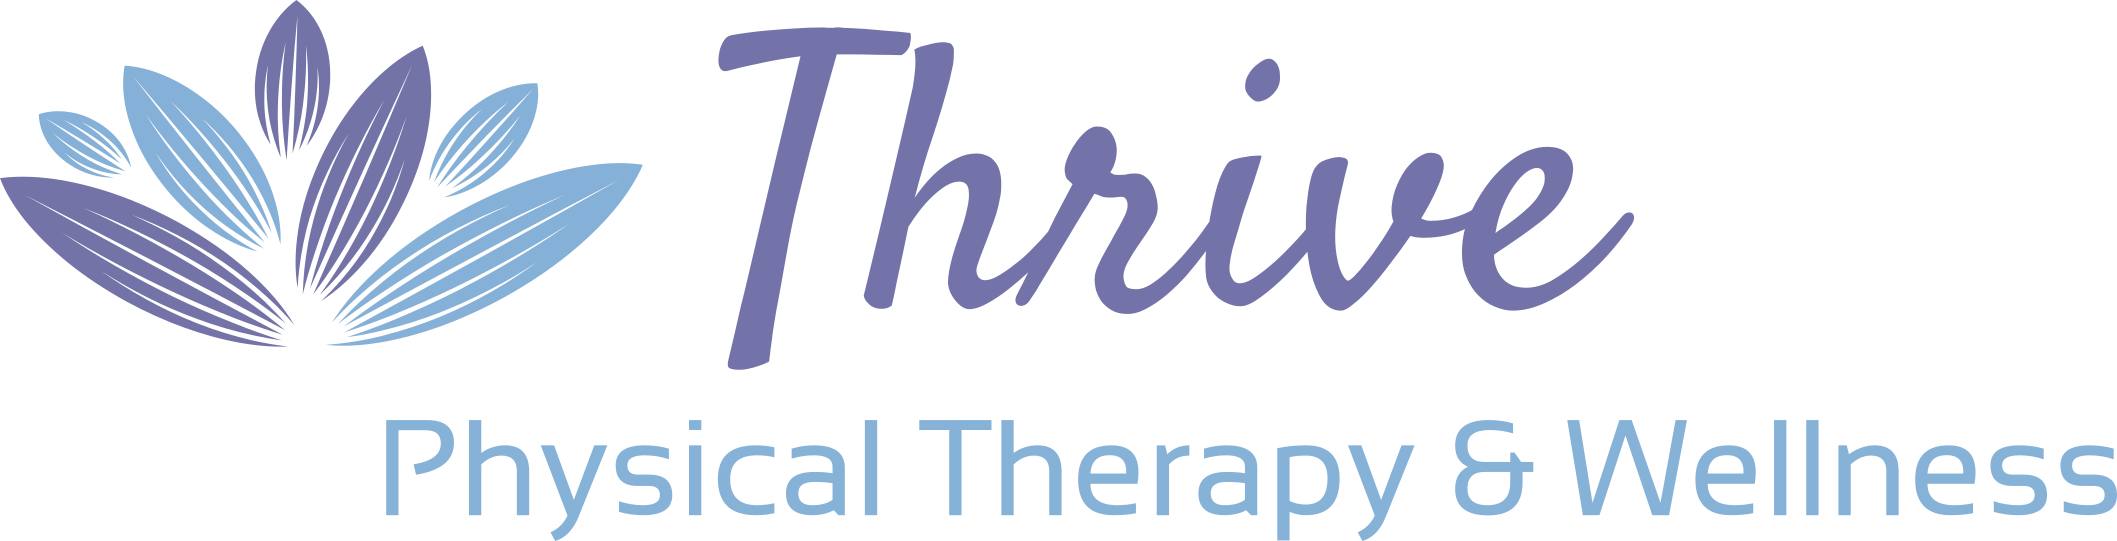 Thrive Physical Therapy I Wellness I Parkinson's Disease I Acute & Chronic Conditions